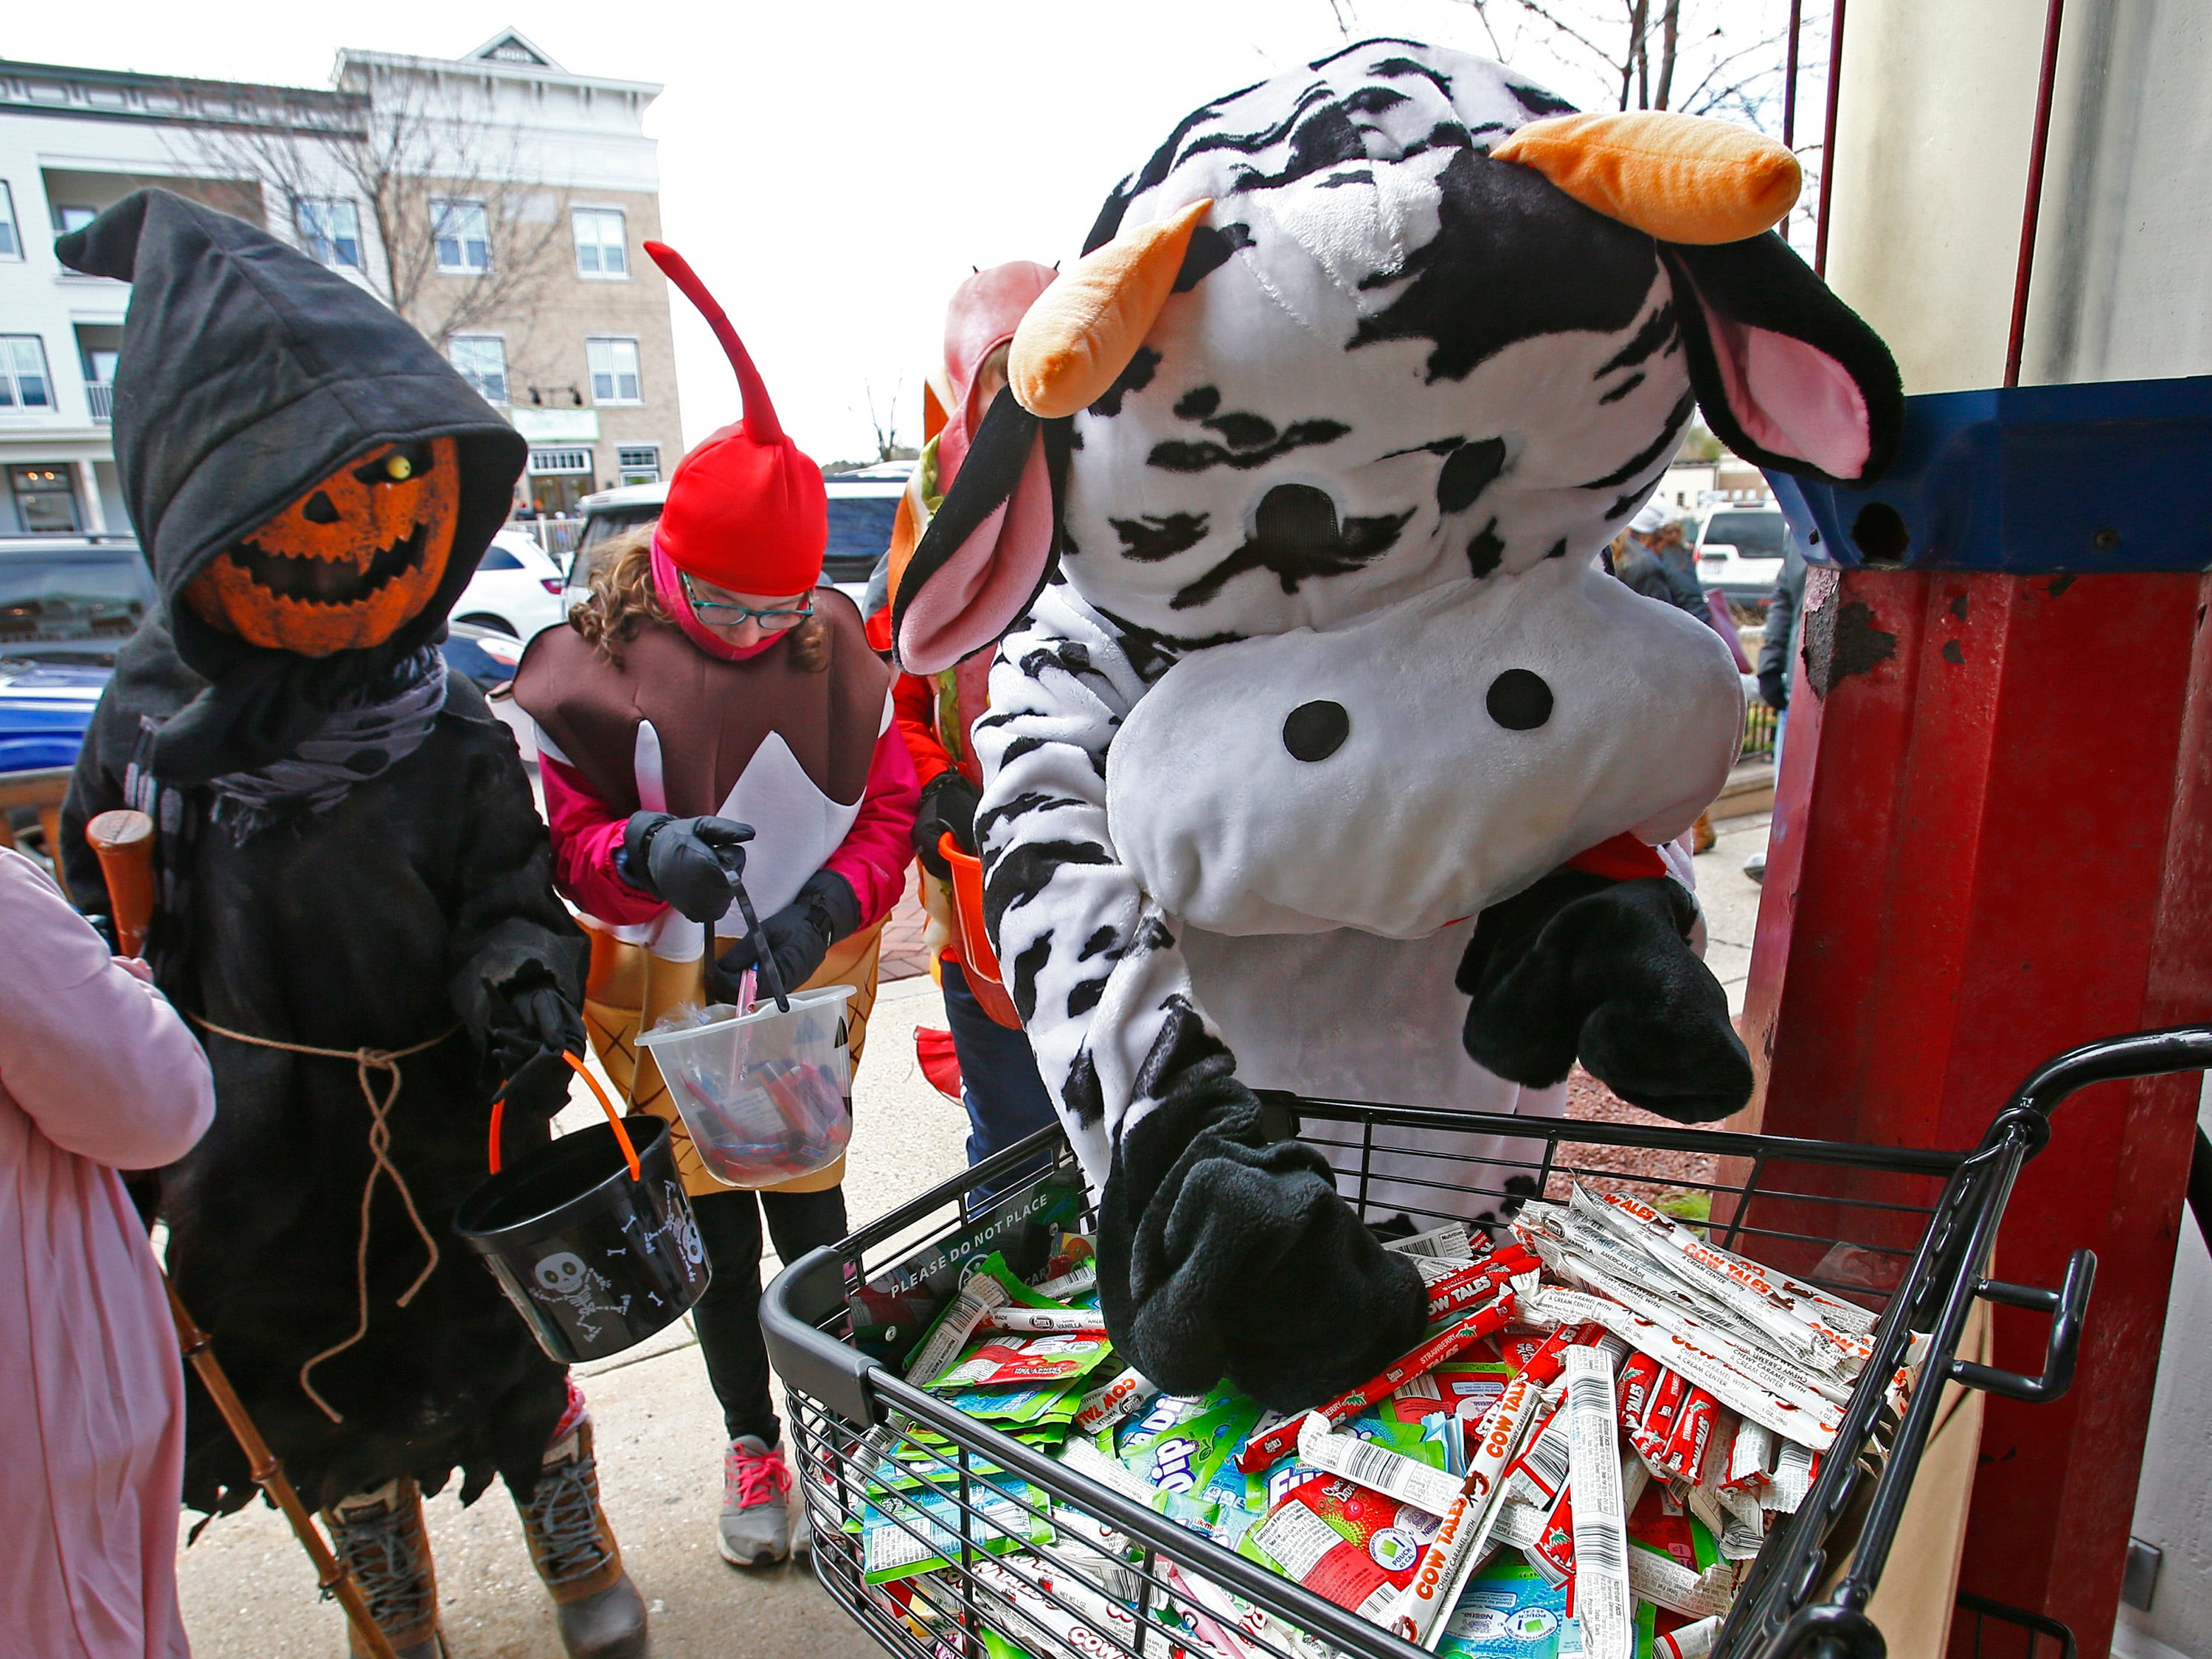 Dressed as a cow, Kelly Newbauer hands out Cow Trail candies at the Day Break Mobile during the Delafield Business Trick or Treat on Oct. 20.